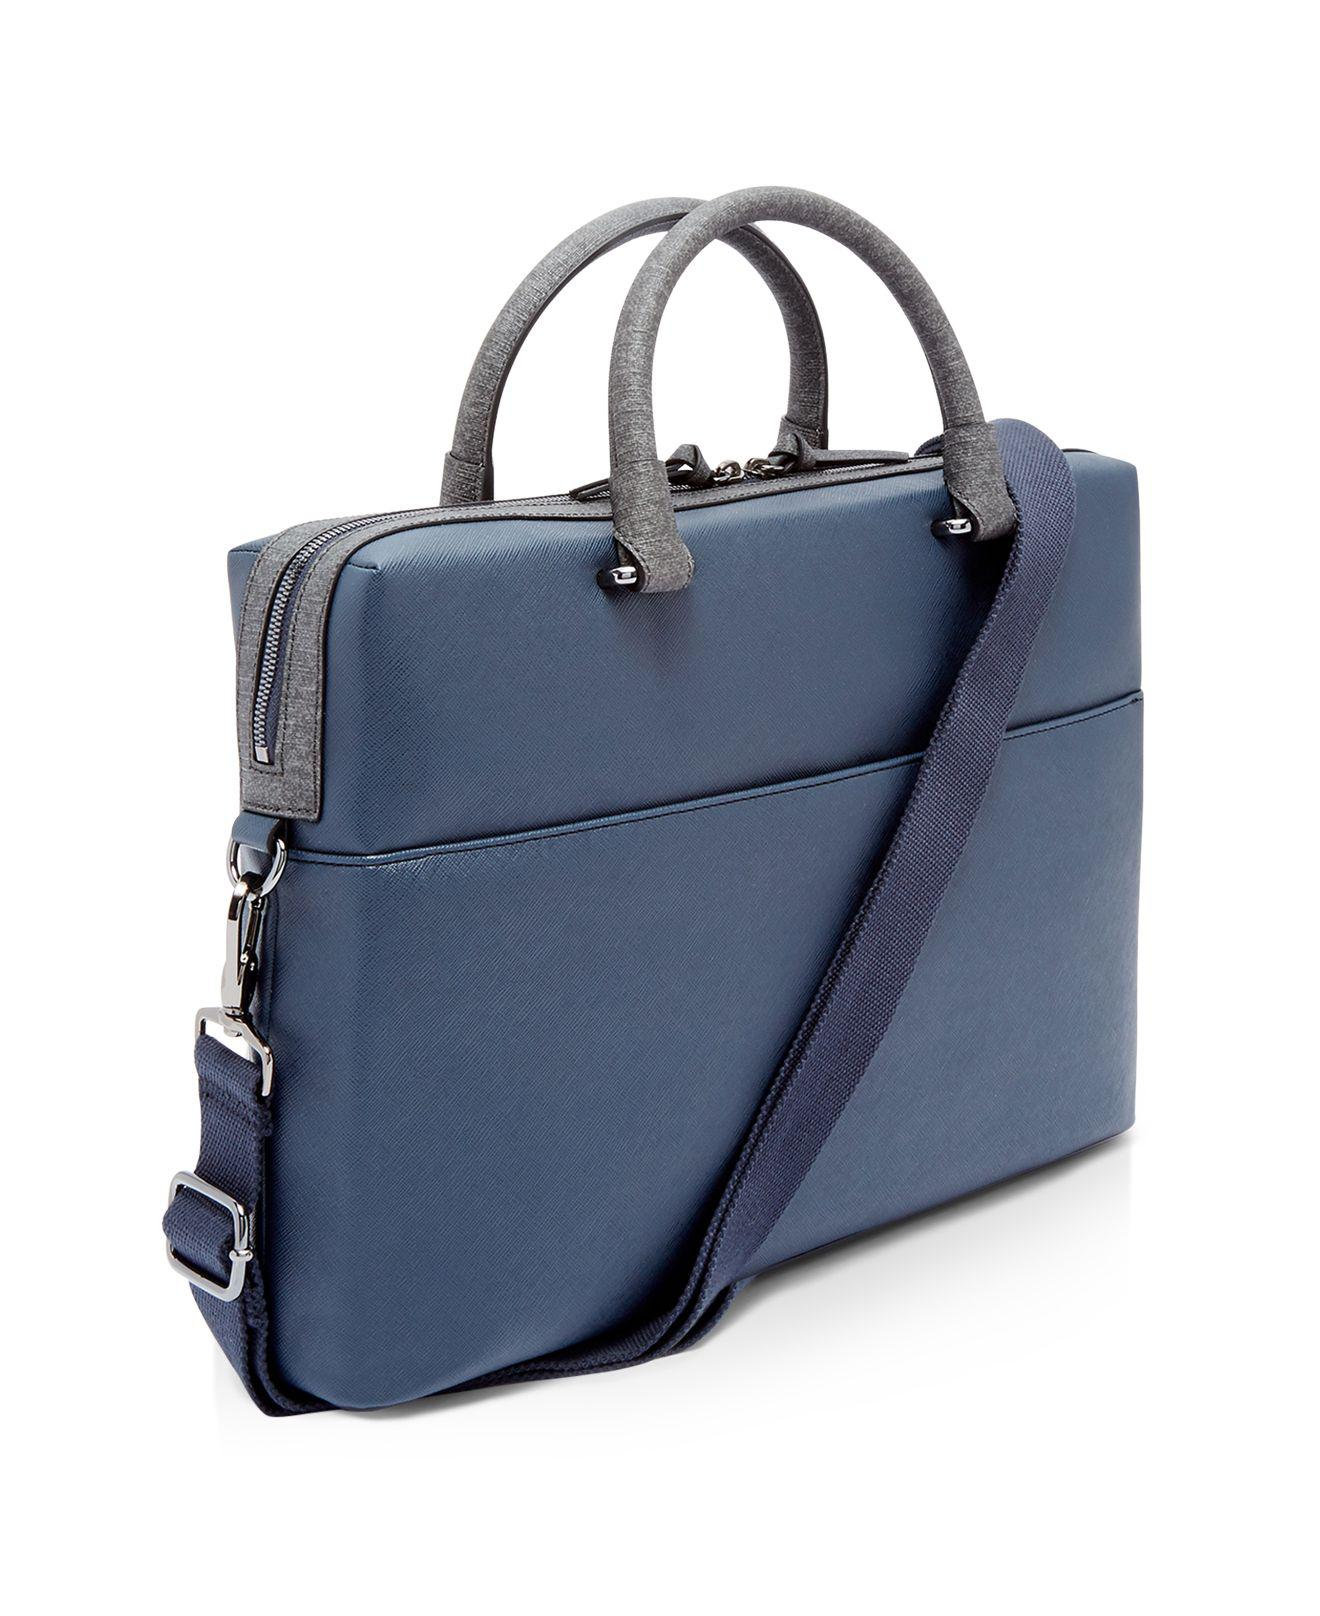 6c9f35a60093 Lyst - Ted Baker Pounce Crossgrain Document Bag in Blue for Men